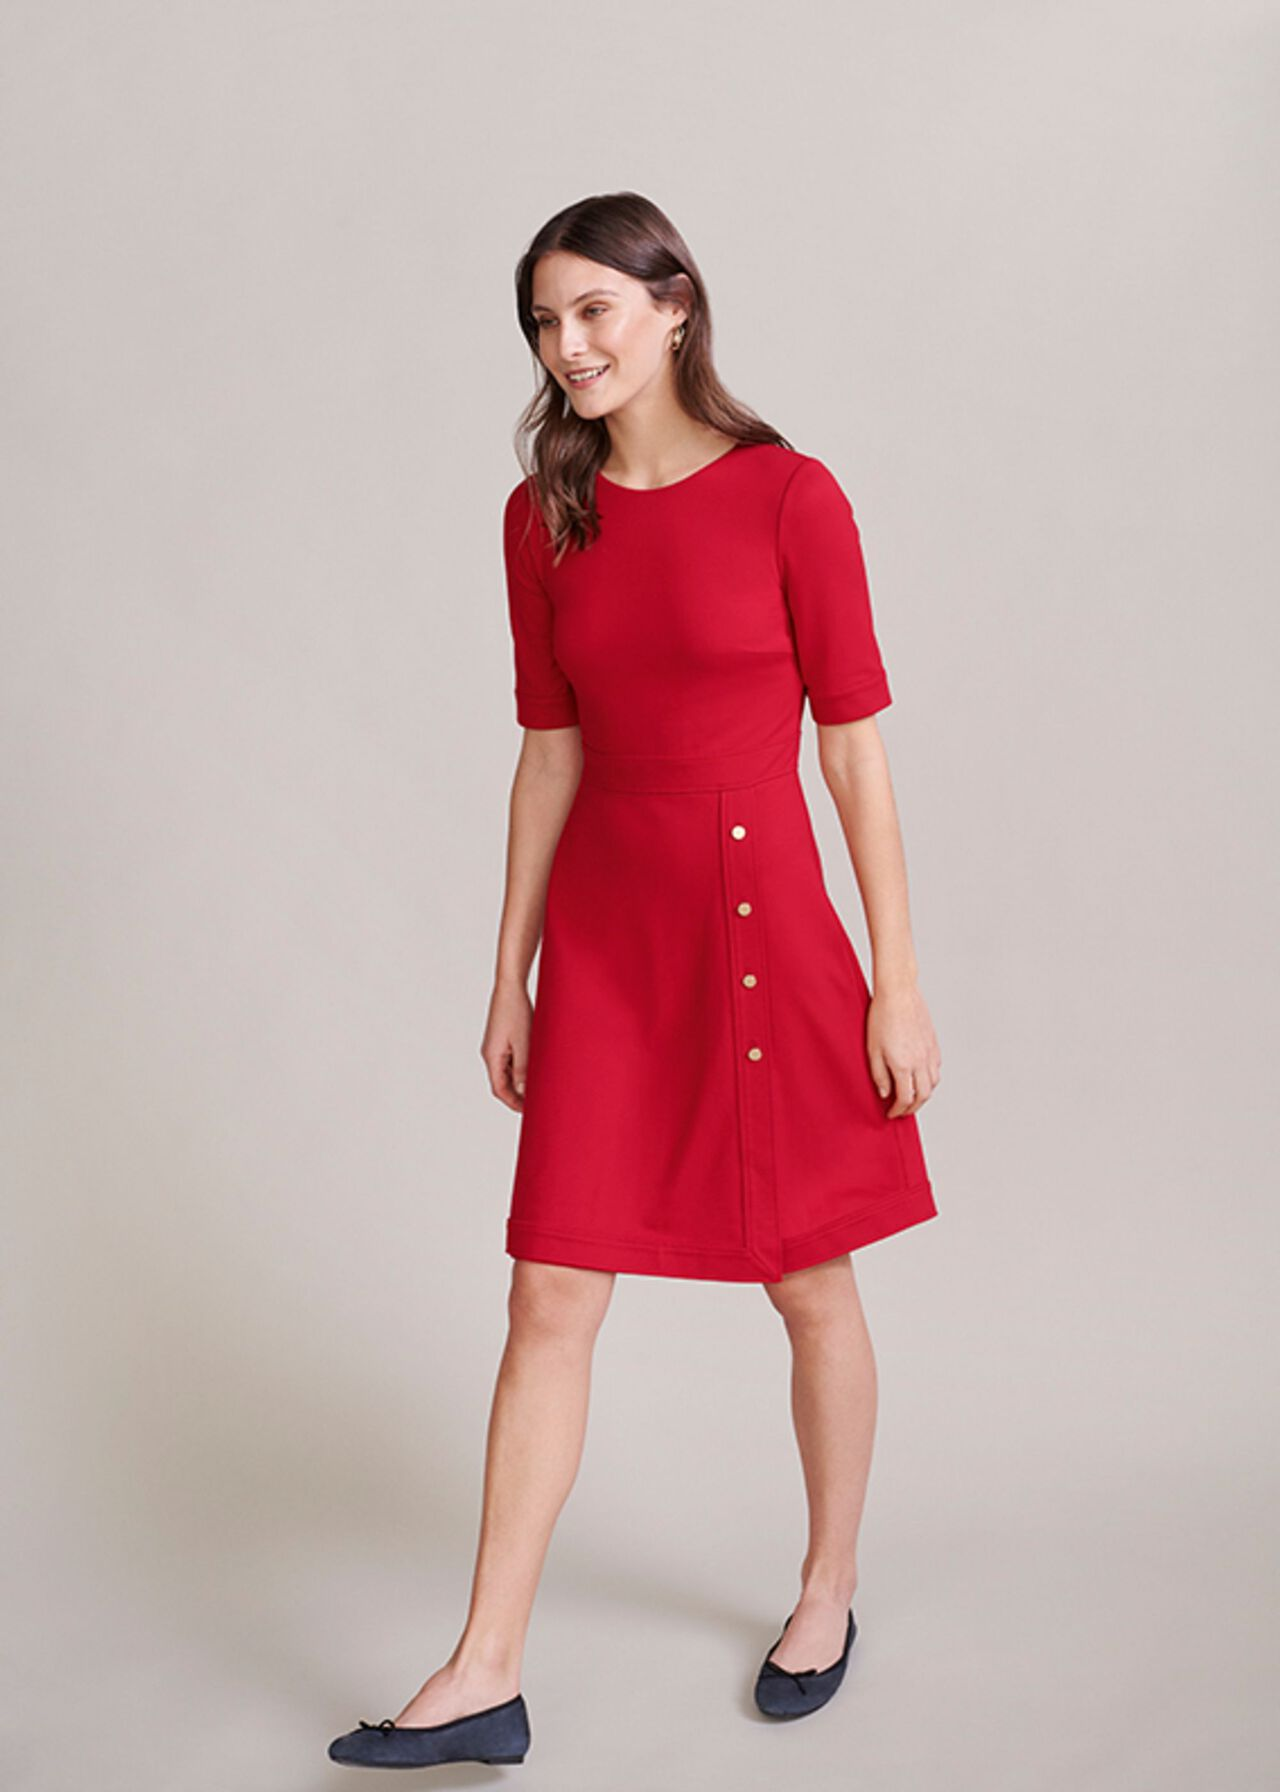 The Red Anela Dress Outfit, , hi-res